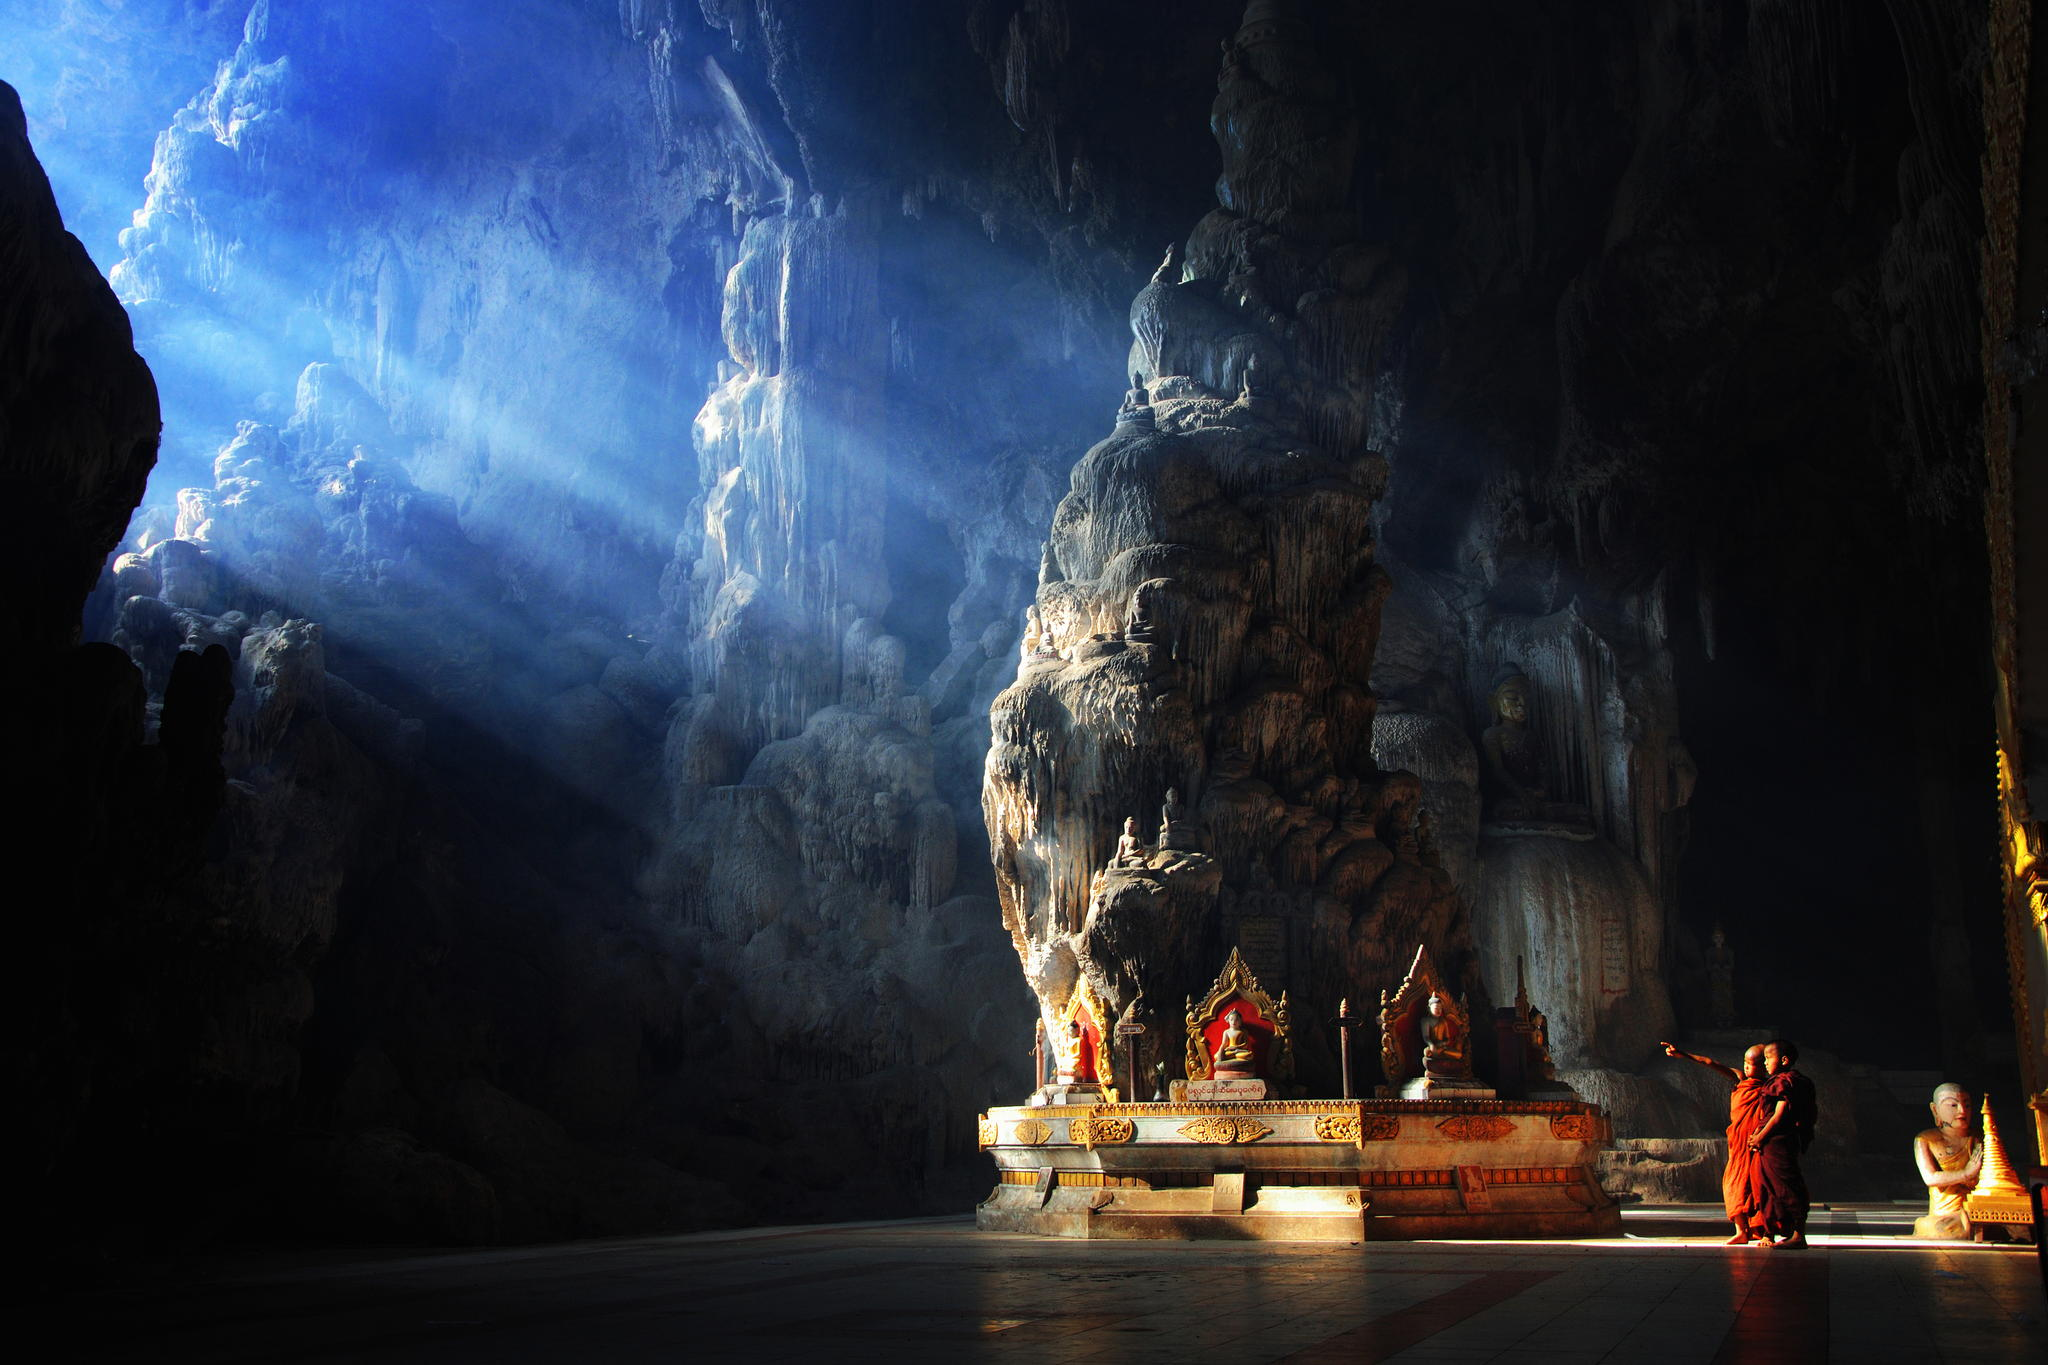 25 - A Buddhist temple inside a cave, Myanmar.